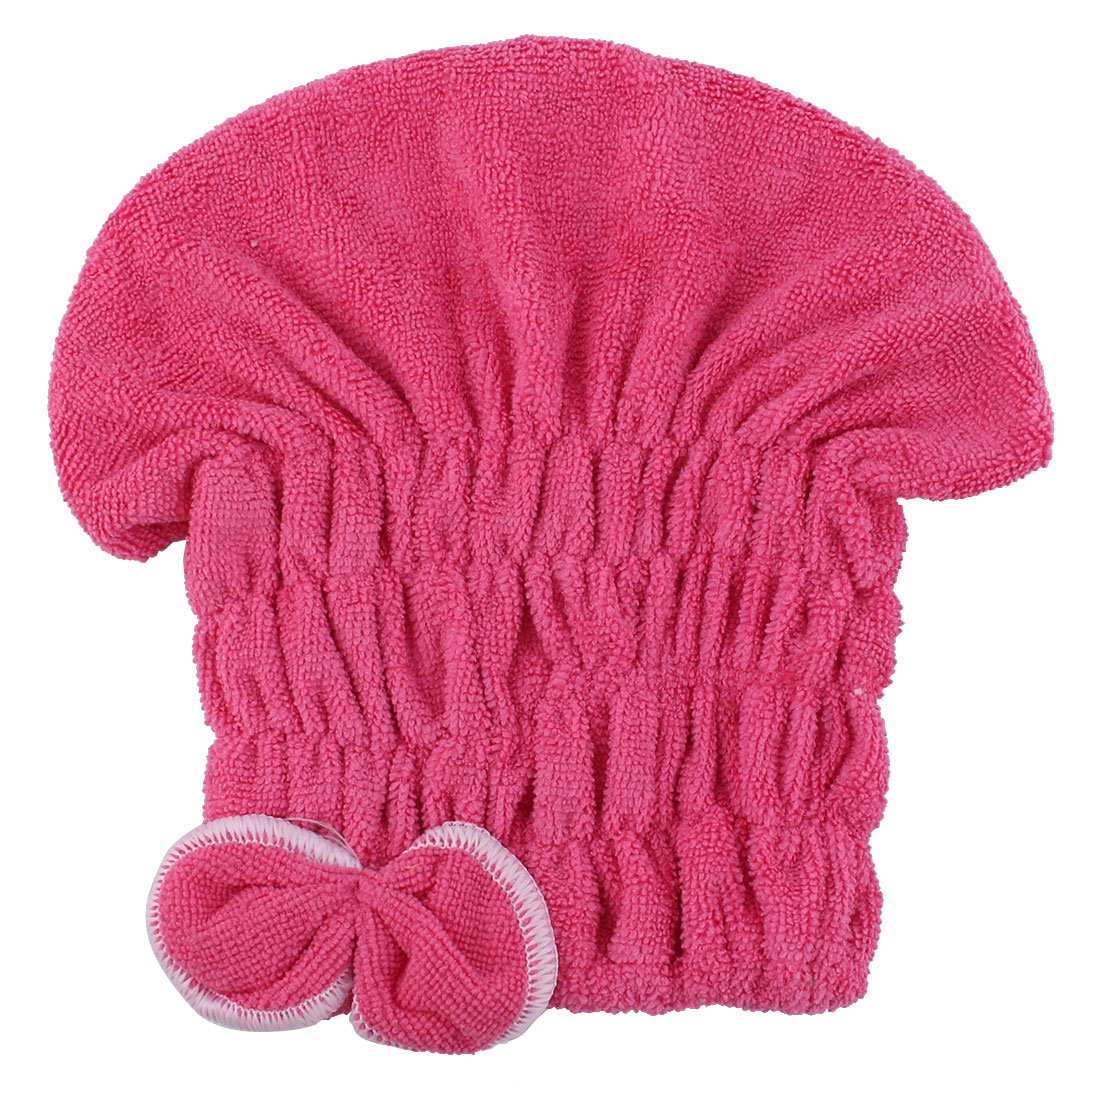 Lady Gym Travel Swimming Shower Pink Microfibre Elastic Hair Fast Dry Drying Cap Turban Towel